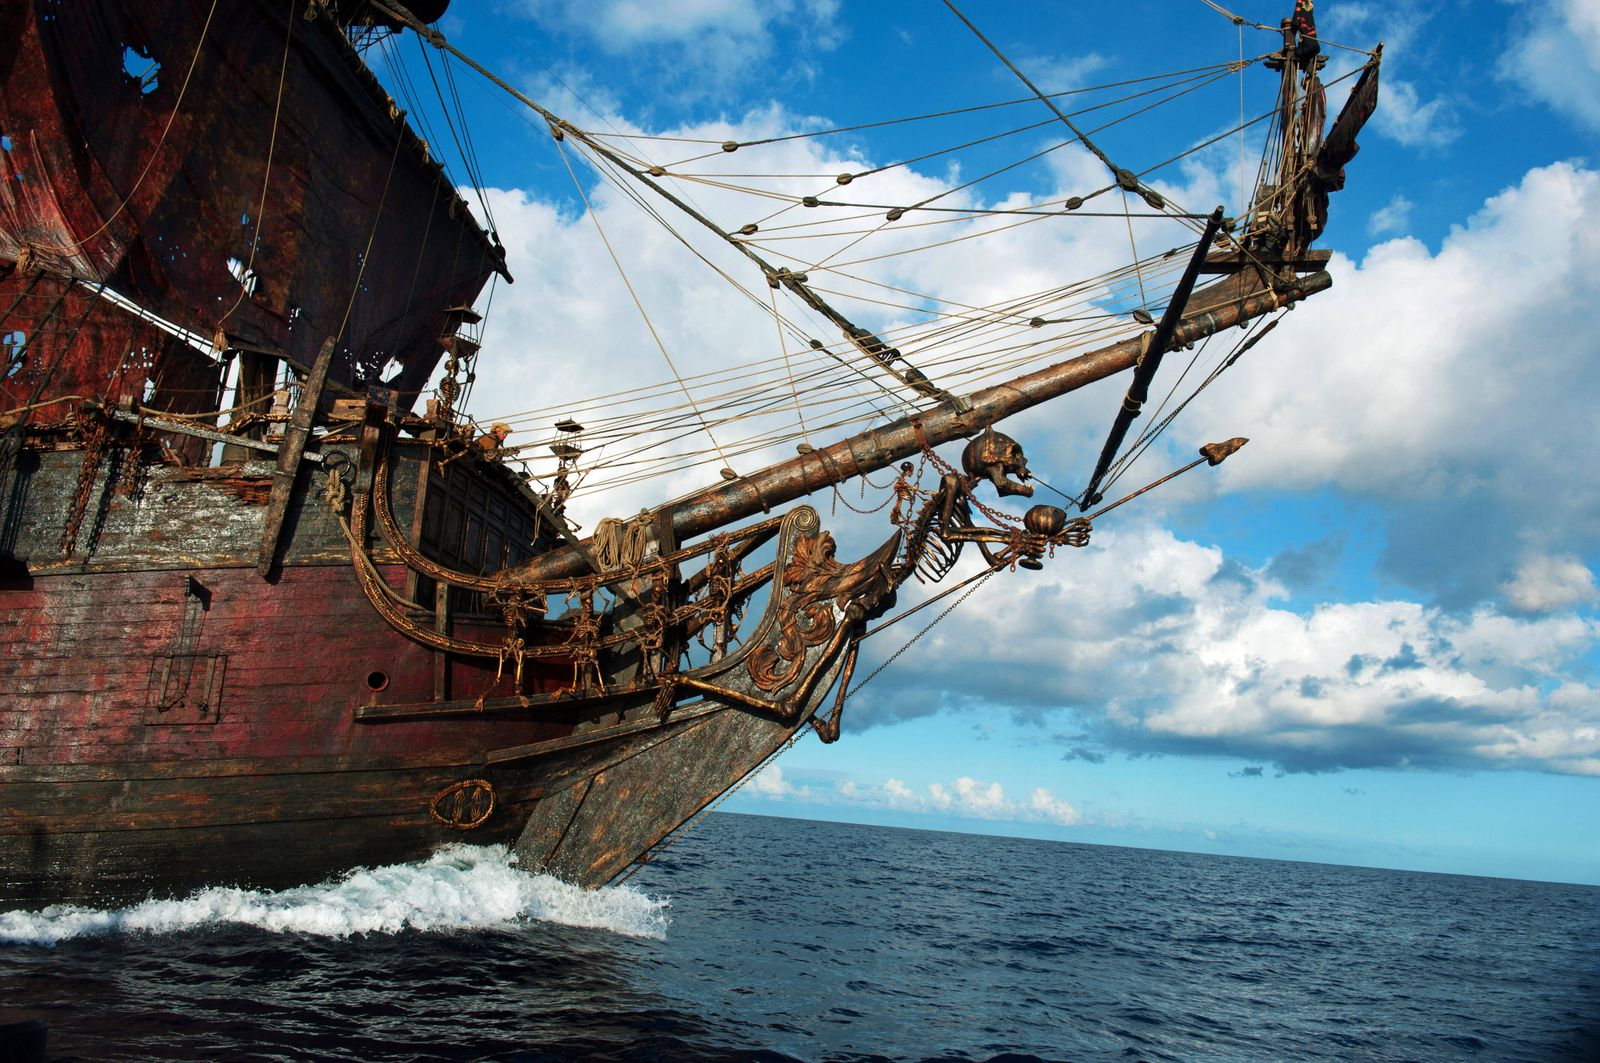 PIRATES OF THE CARIBBEAN: ON STRANGER TIDES, Blackbeard s sinister ship, the Queen Anne s Revenge, 2011, ph: Peter Mount